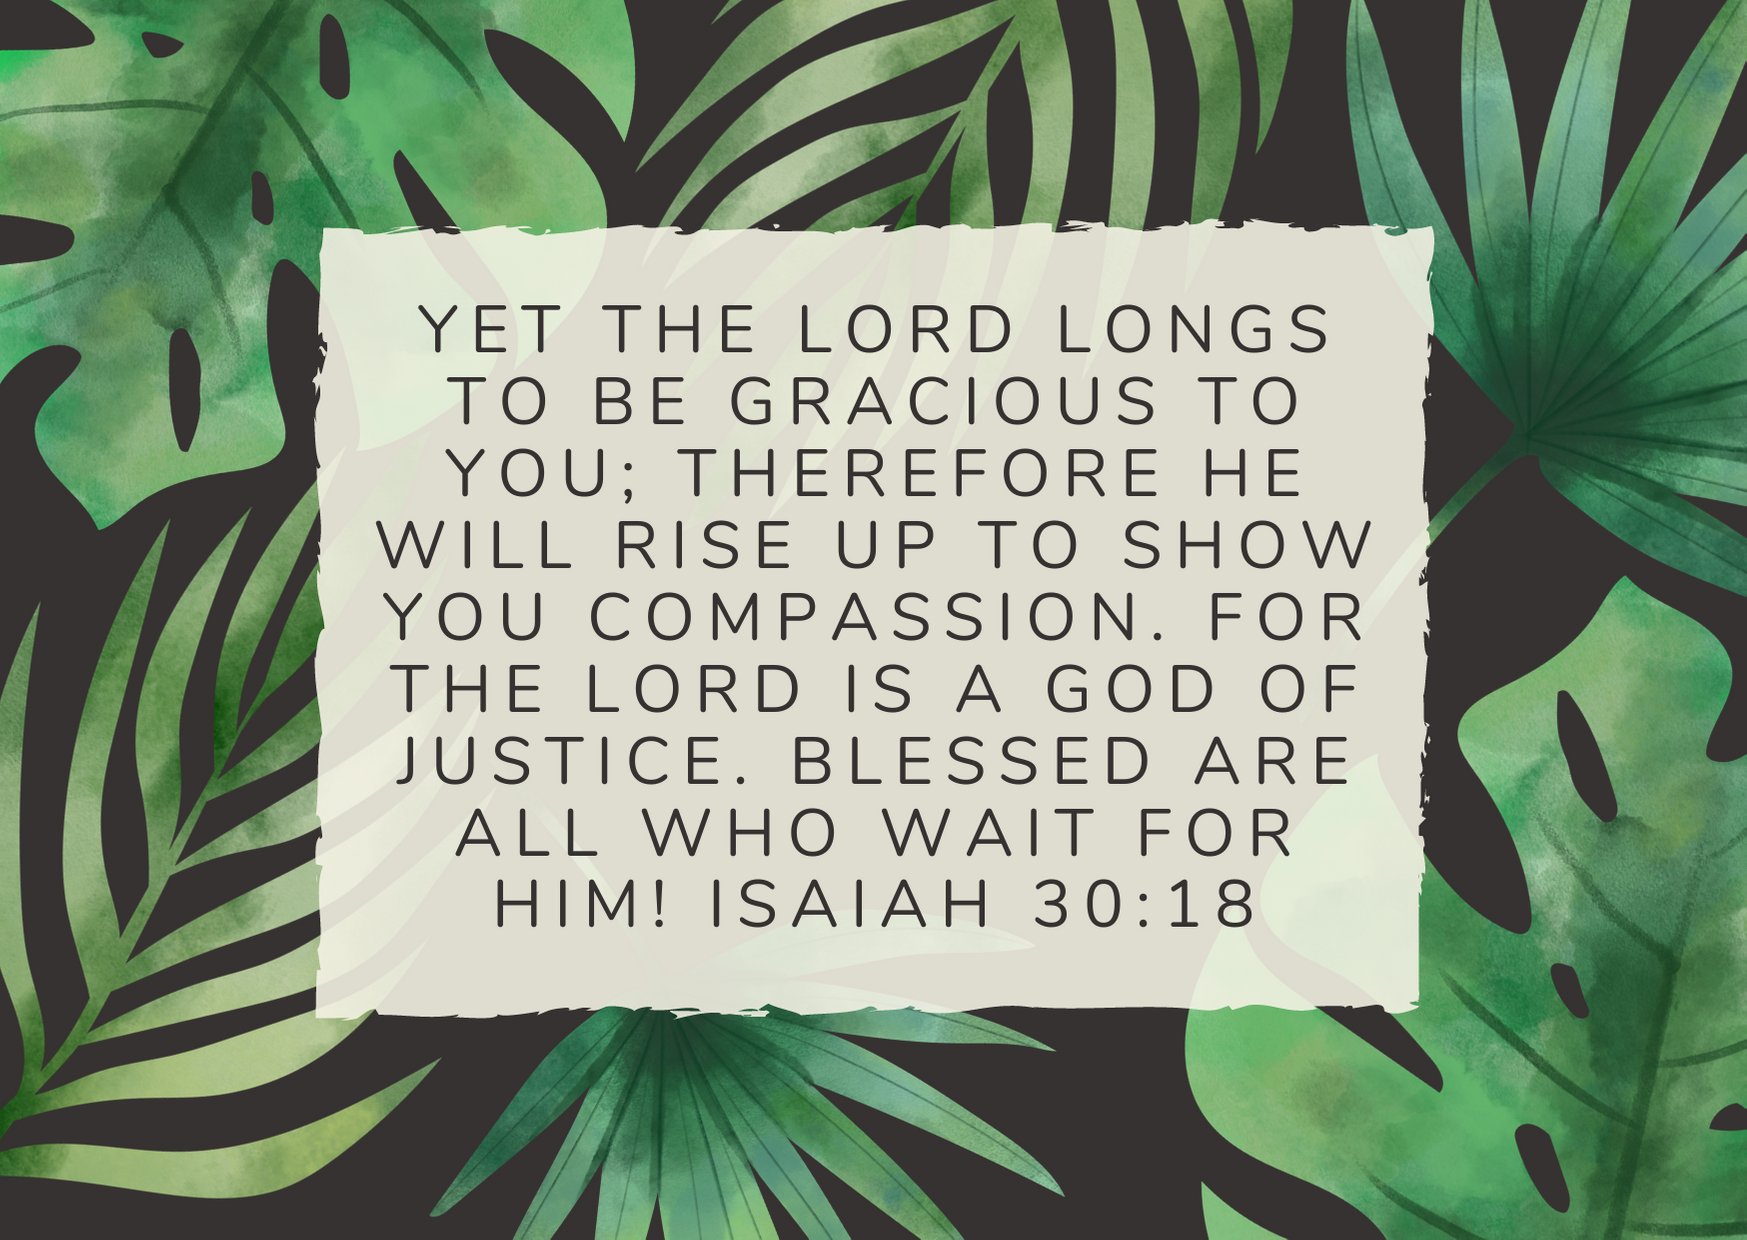 Yet the Lord longs to be gracious to you; therefore he will rise up to show you compassion. For the Lord is a God of justice. Blessed are all who wait for him! Isaiah 30:18